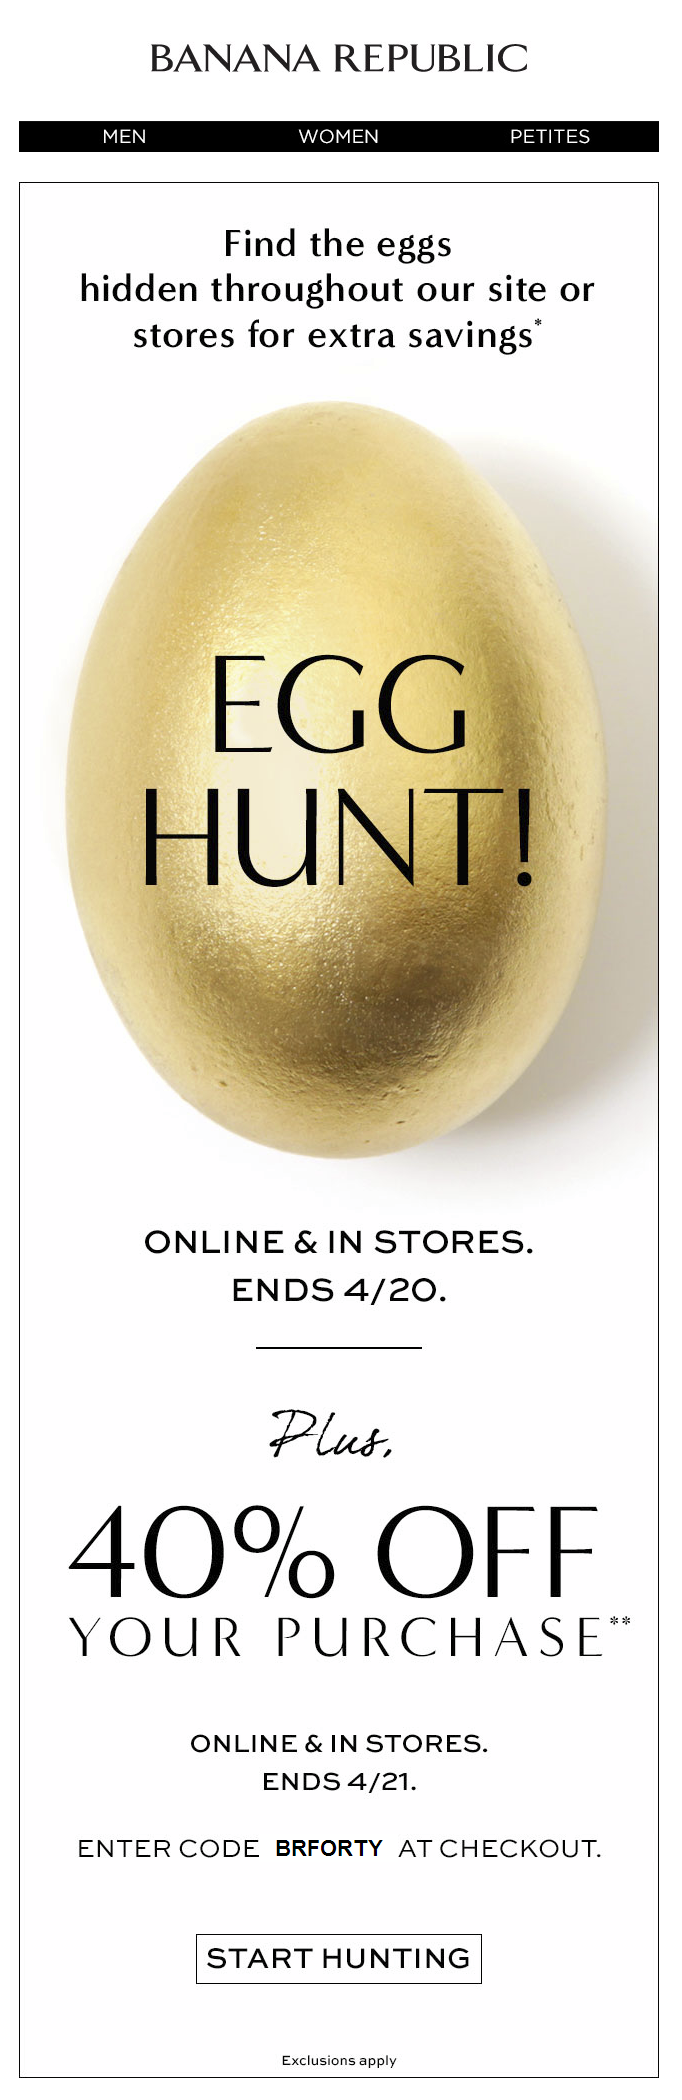 Easter Email Design: Have fun with it! APSIS Blog